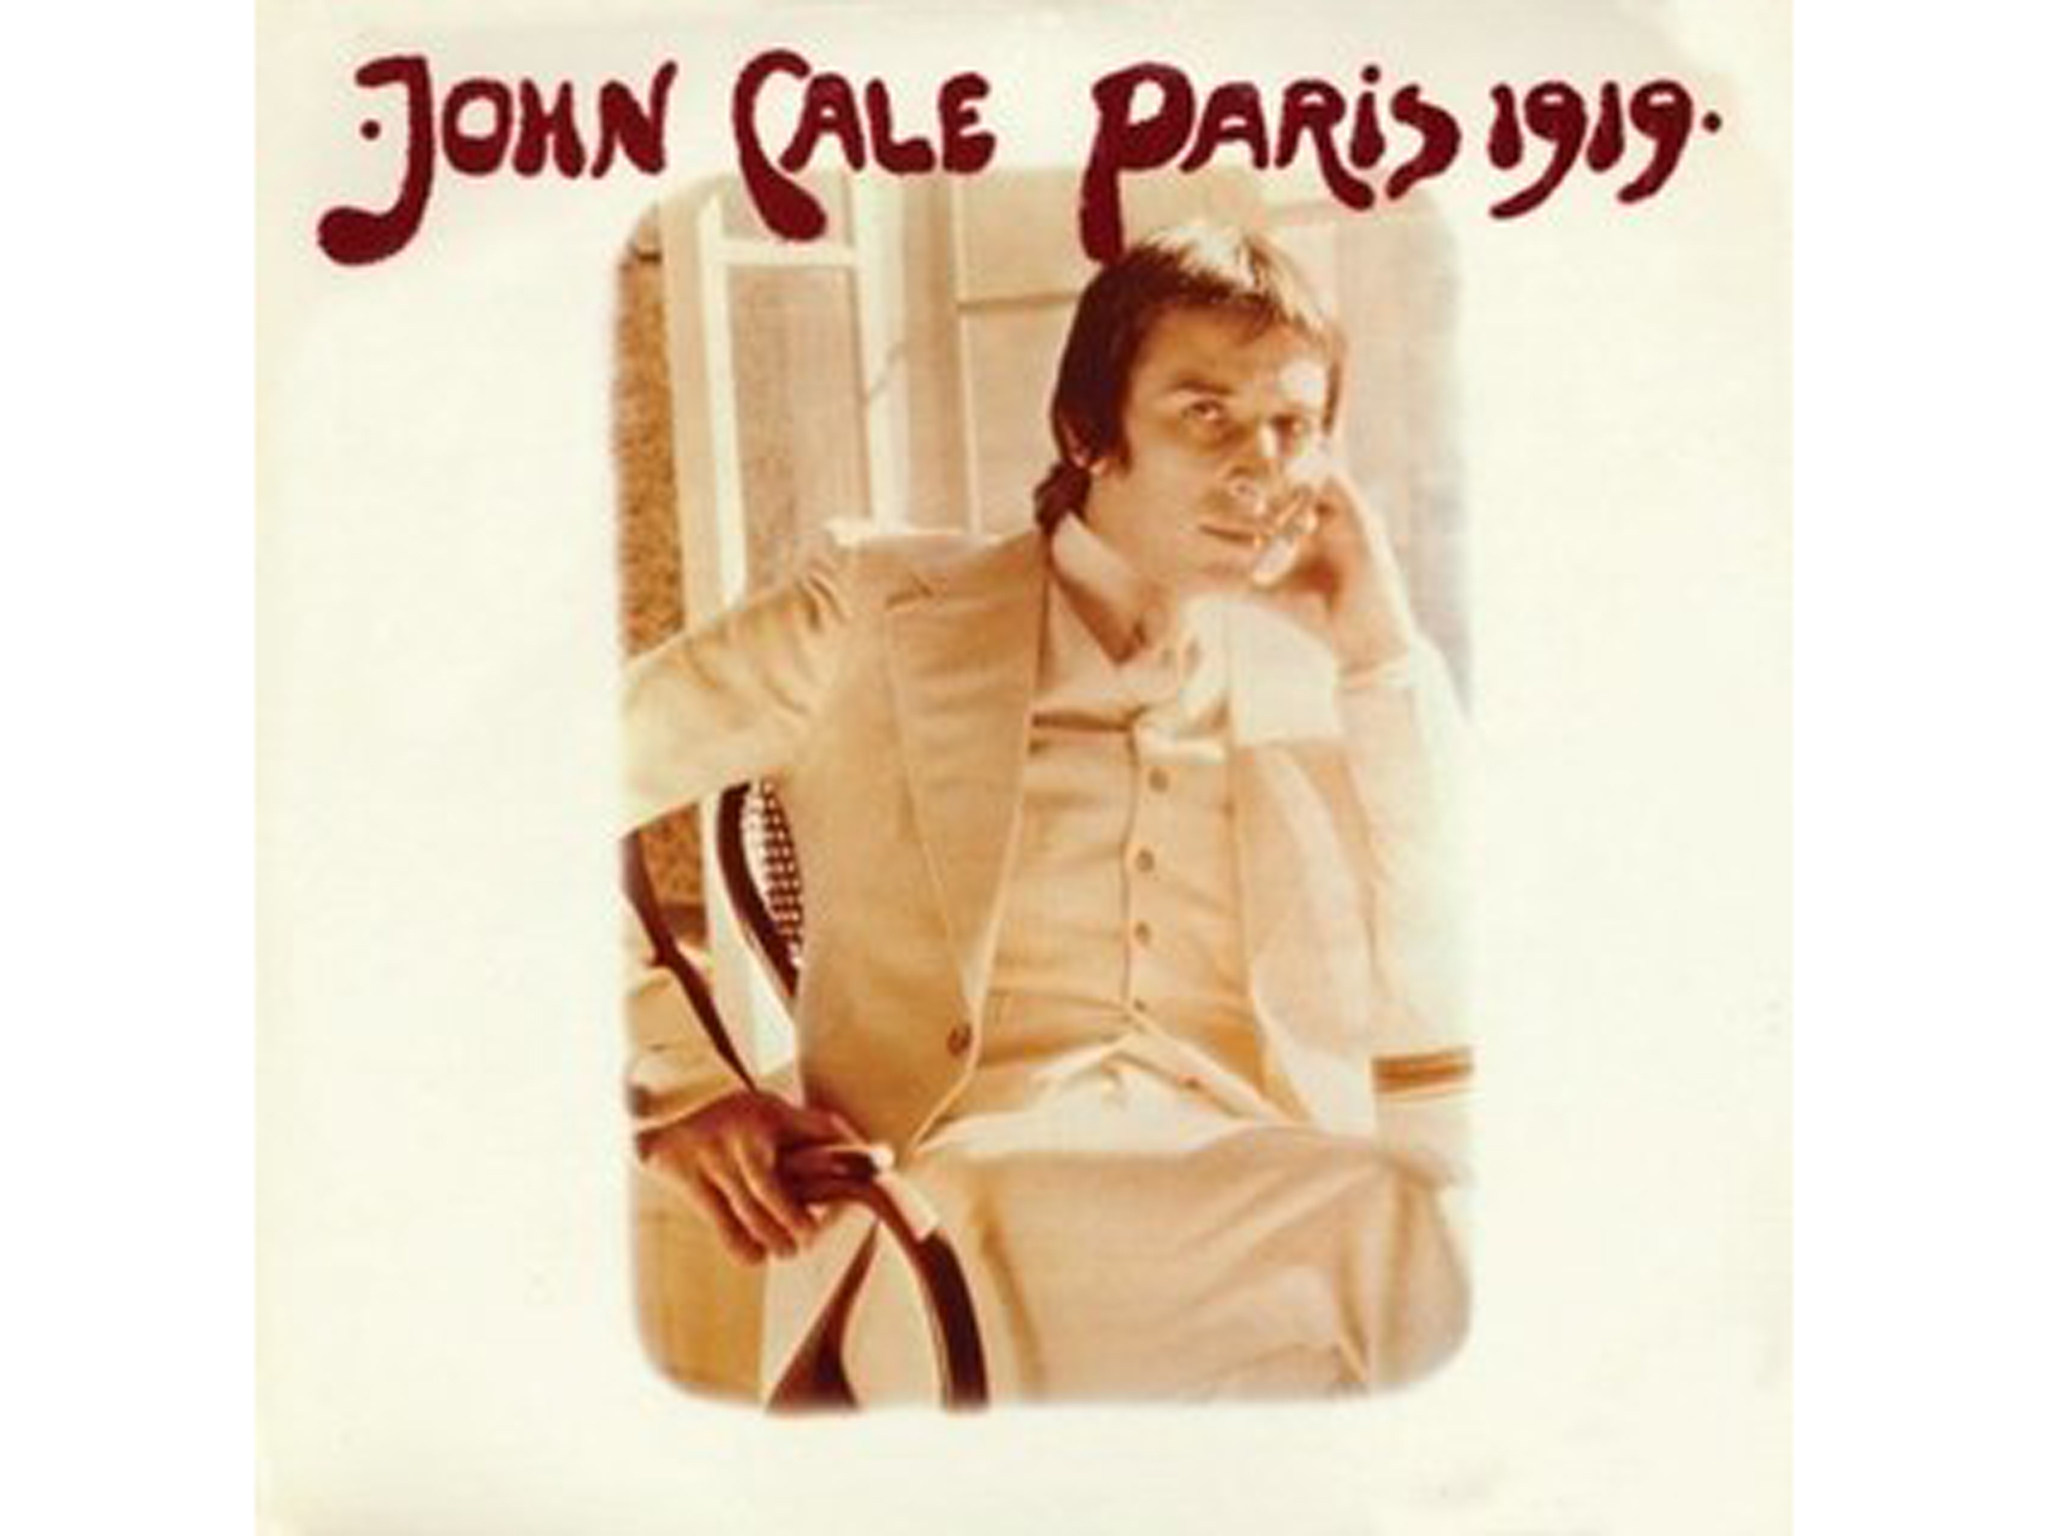 Paris 1919 album by John Cale